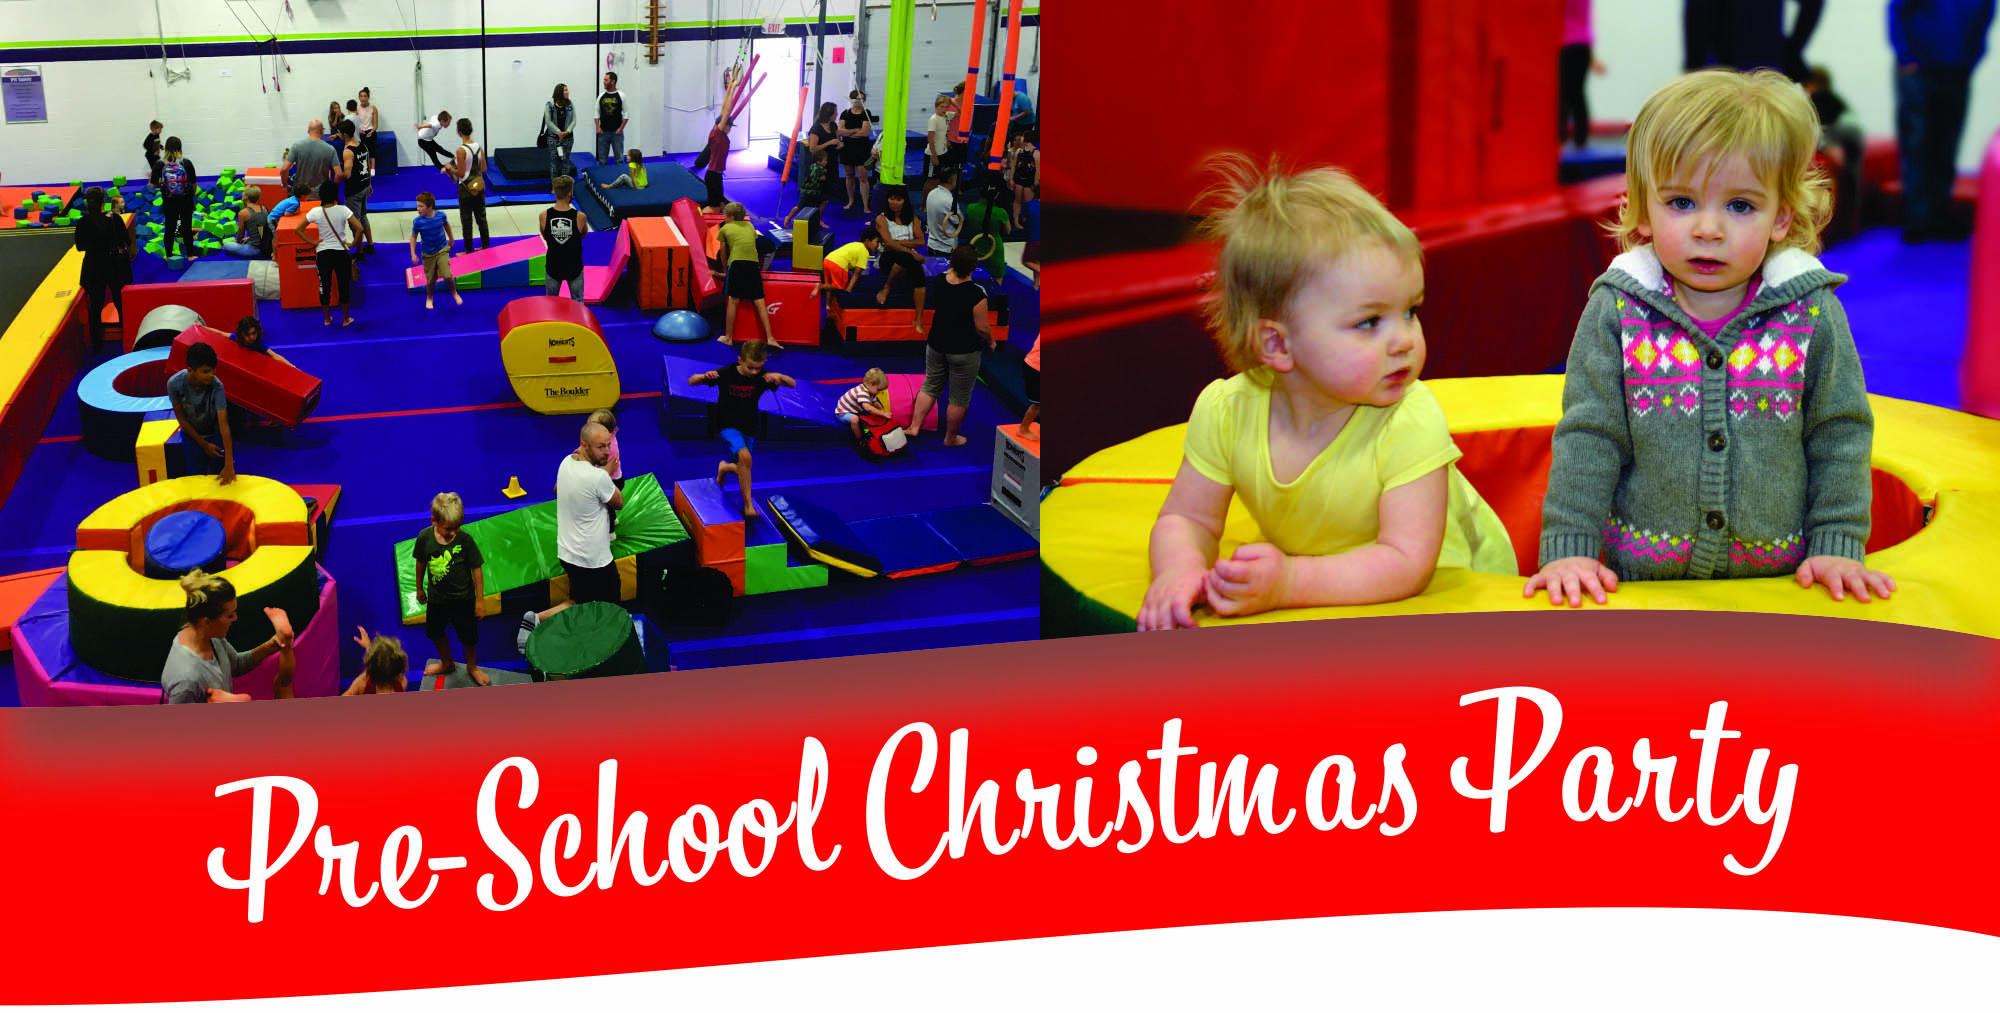 kelowna gymnastics preschool christmas party